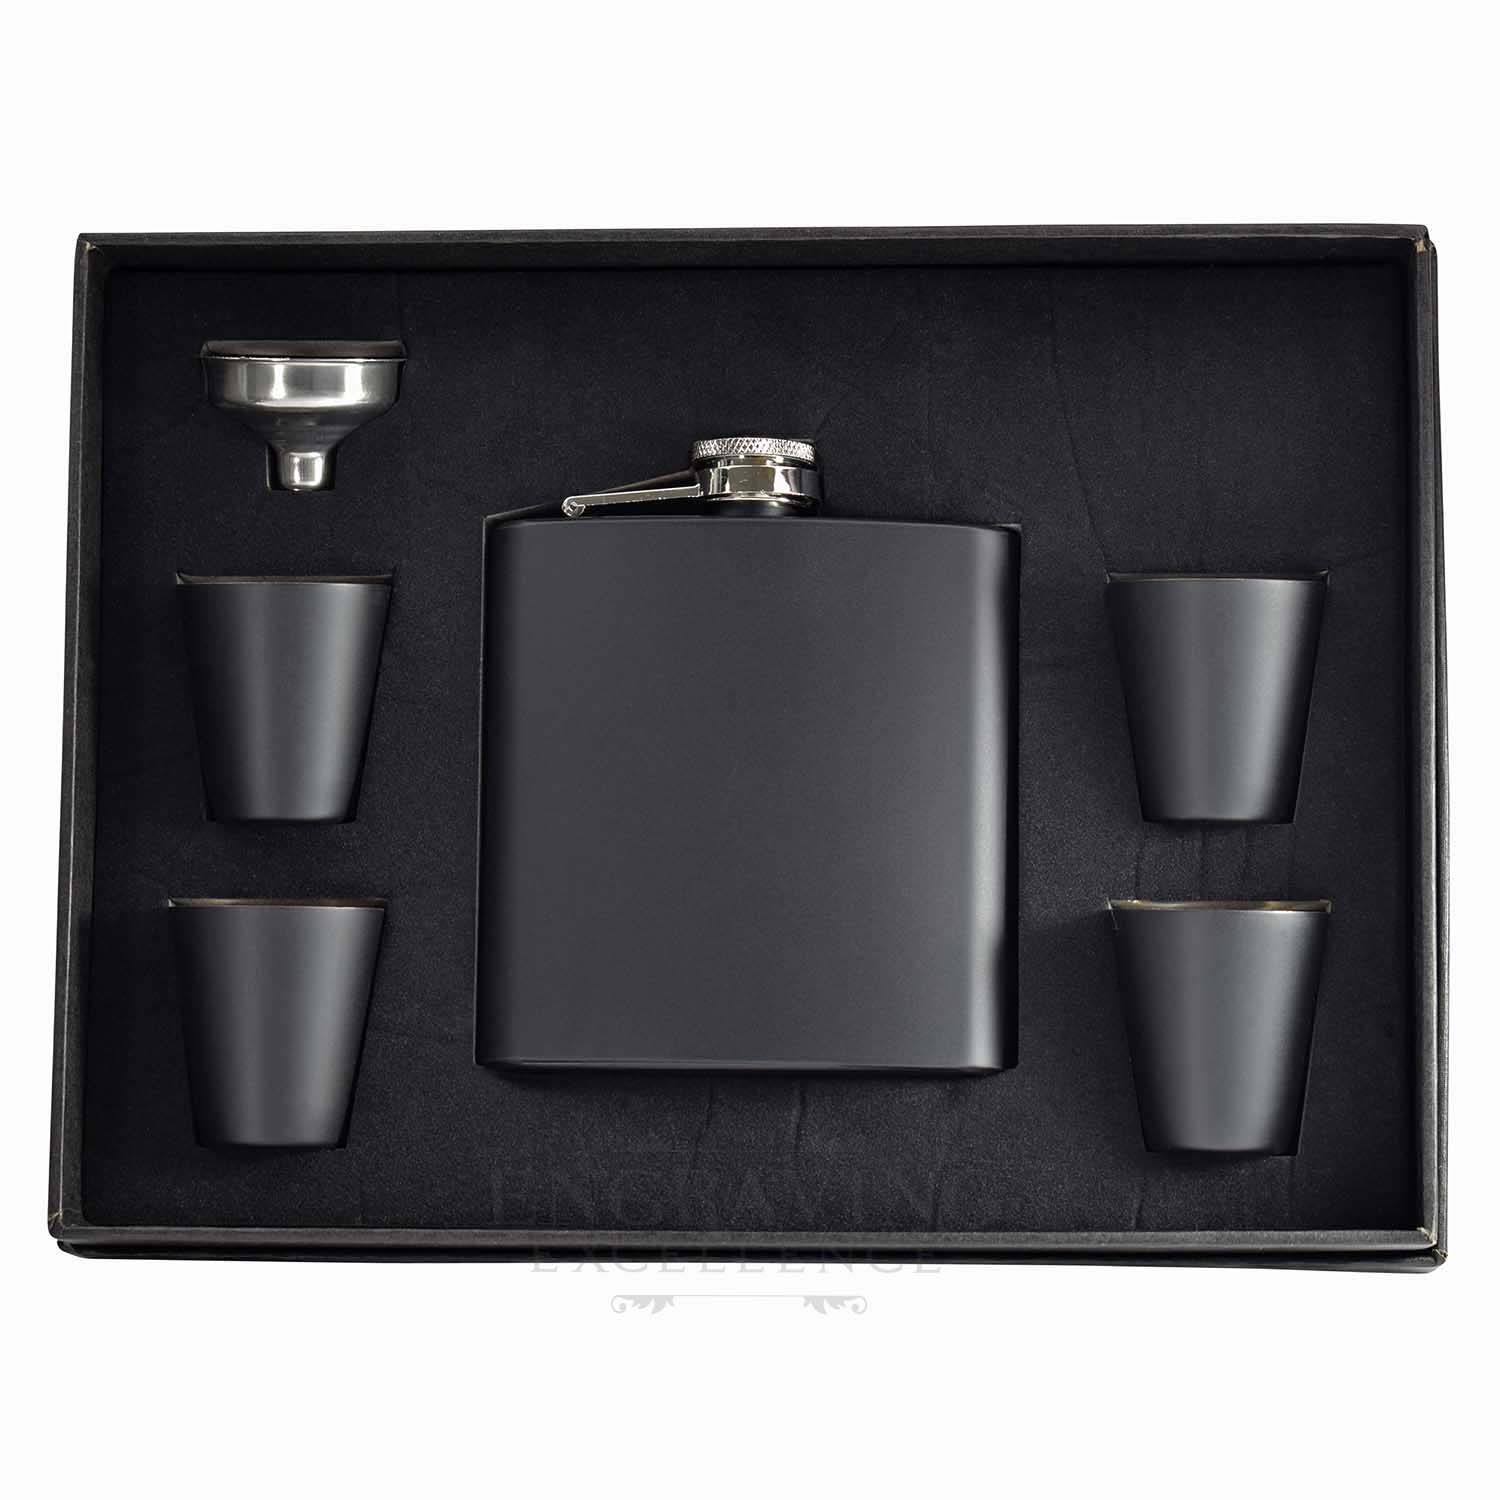 Black Stainless Steel 6oz Hip Flask with Funnel and 4 Cups in a Presentation Box